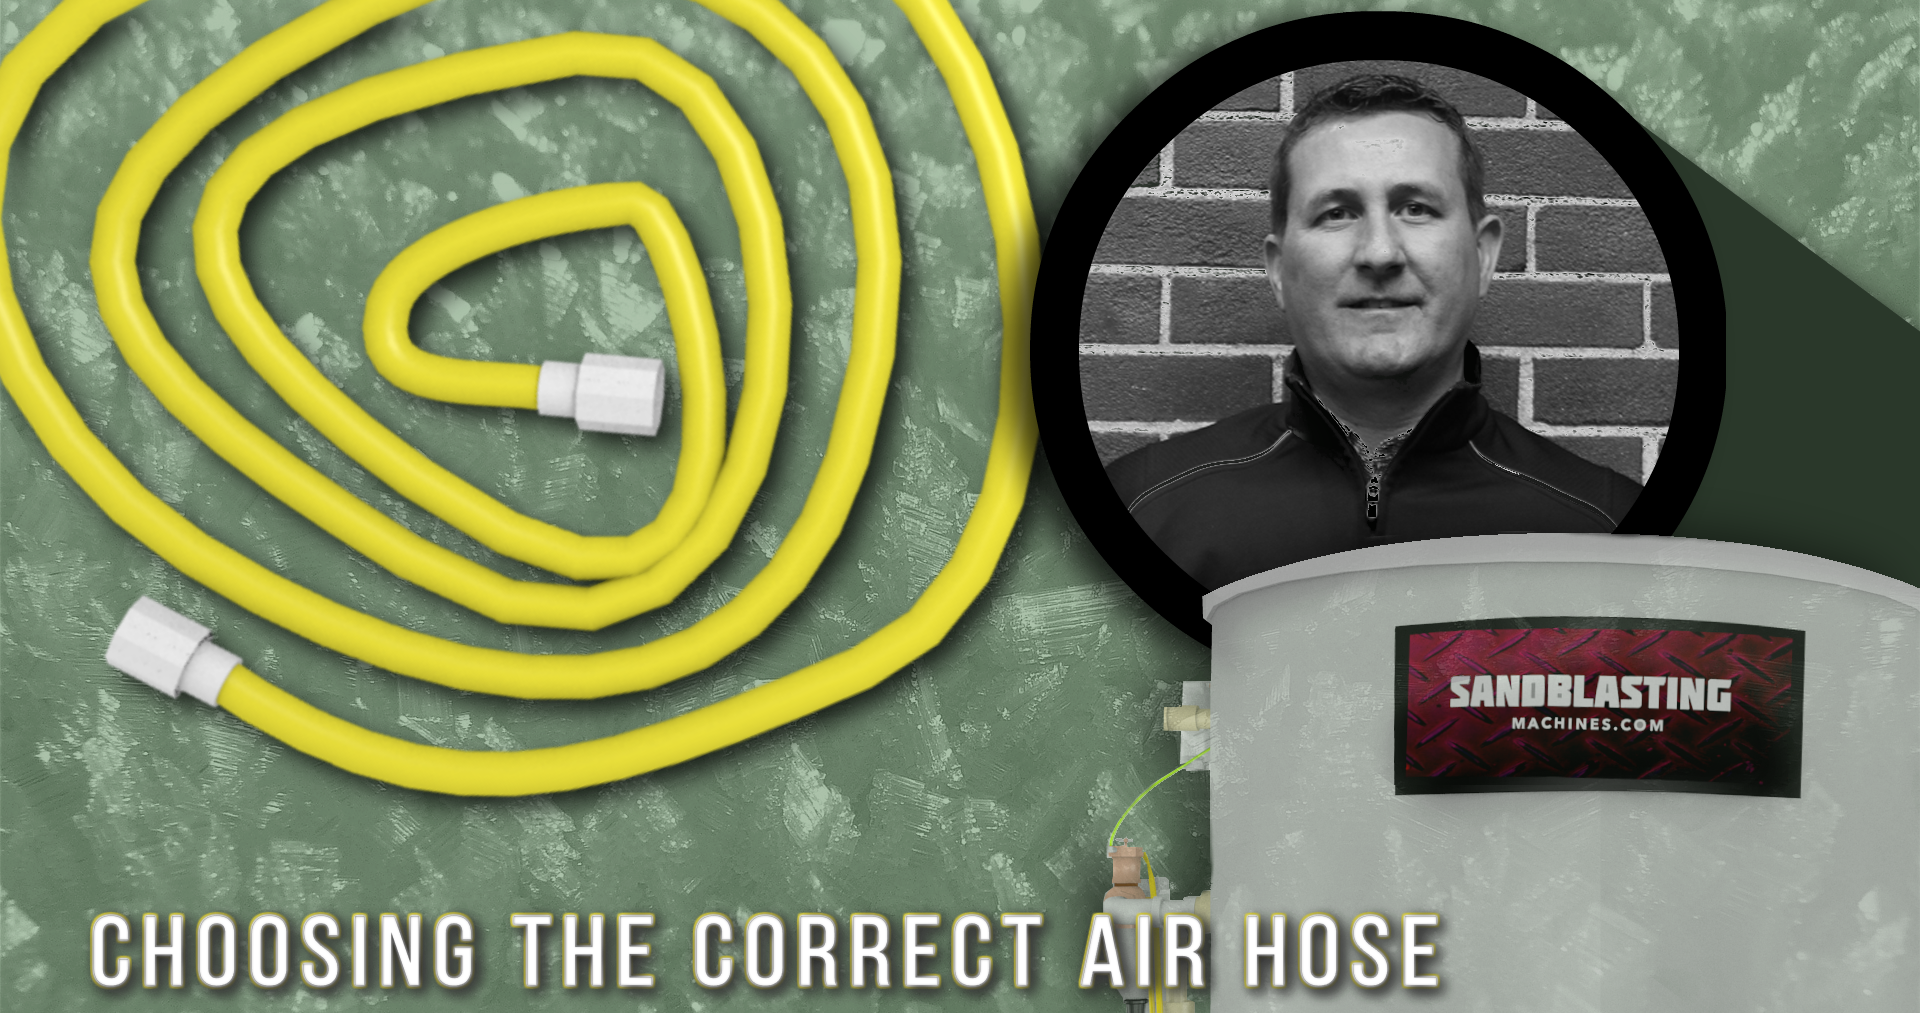 How to Choose the Correct Air Hose for Sandblasting